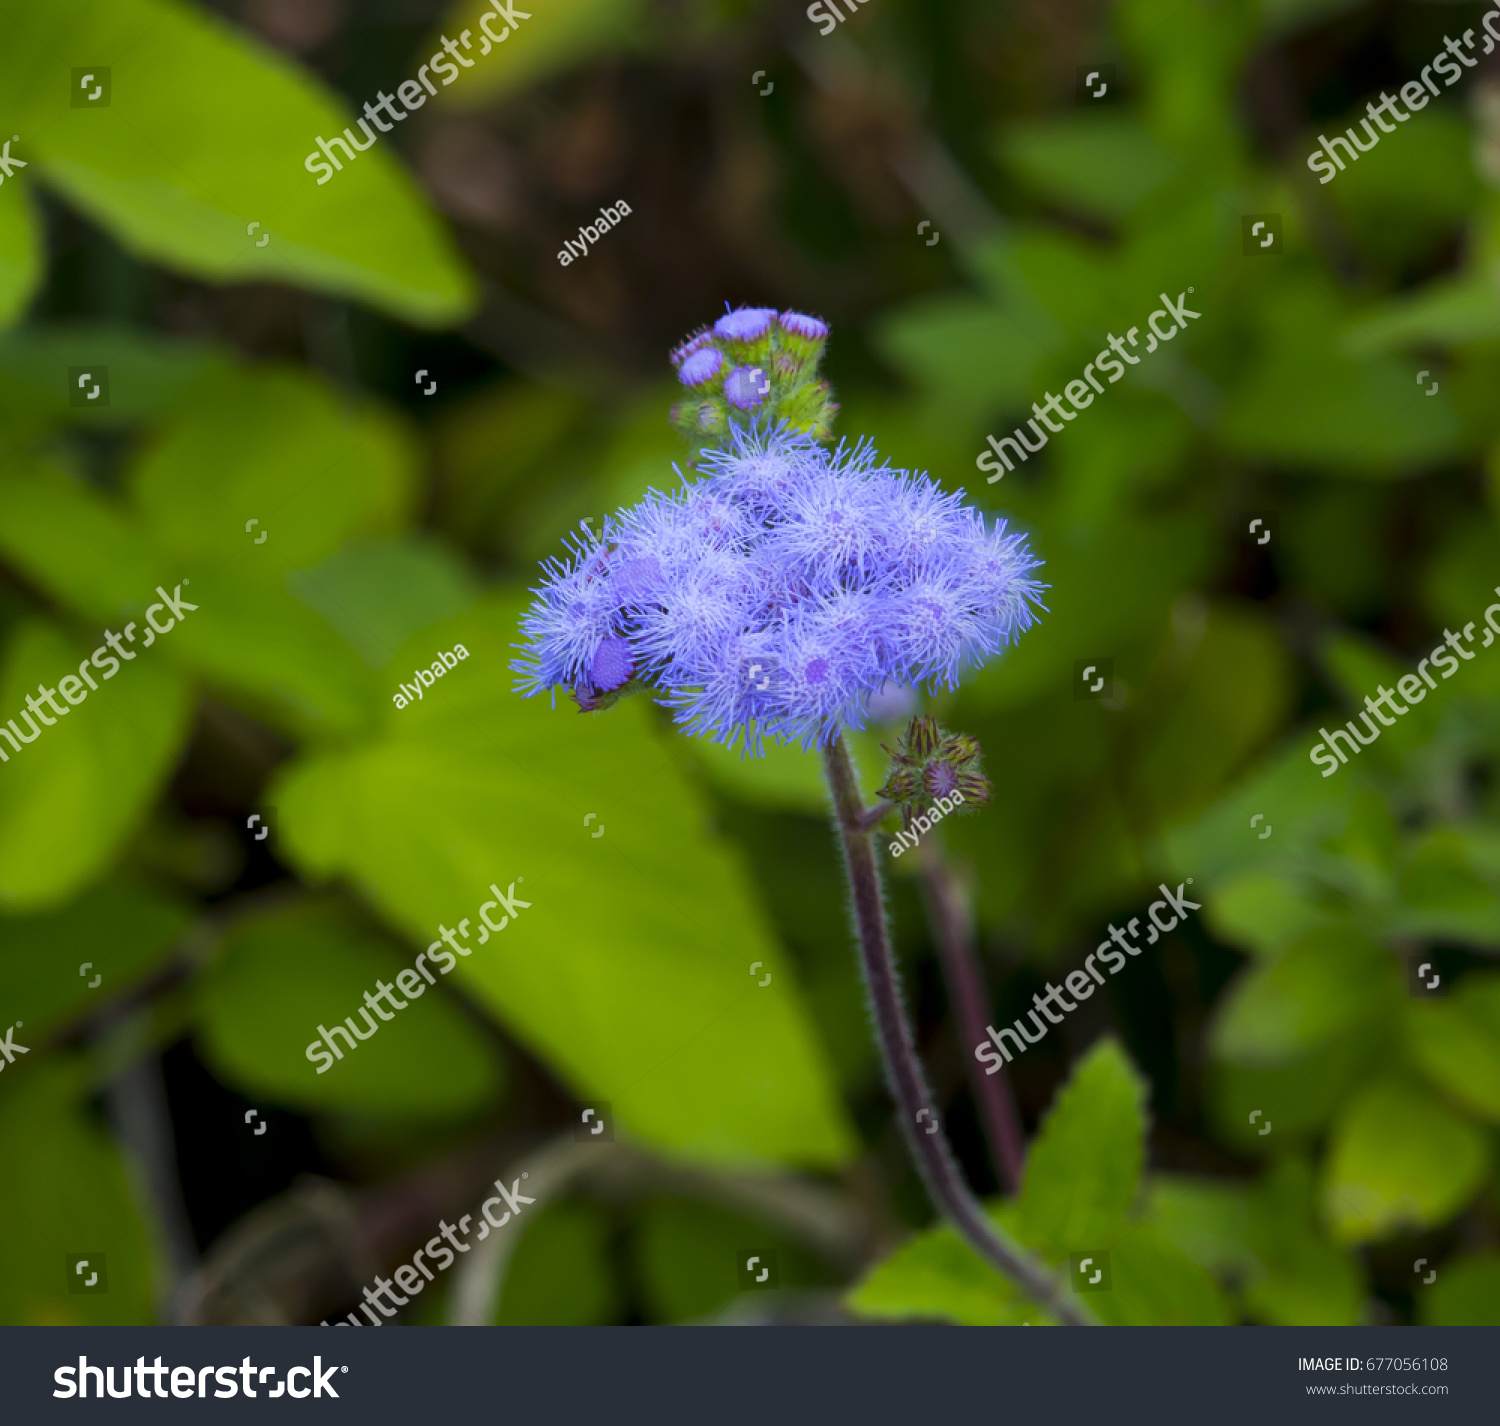 Ethereal misty powder blue flowers perennial stock photo edit now ethereal misty powder blue flowers of perennial ageratum houstonianum cover the hairy green leaved plant in izmirmasajfo